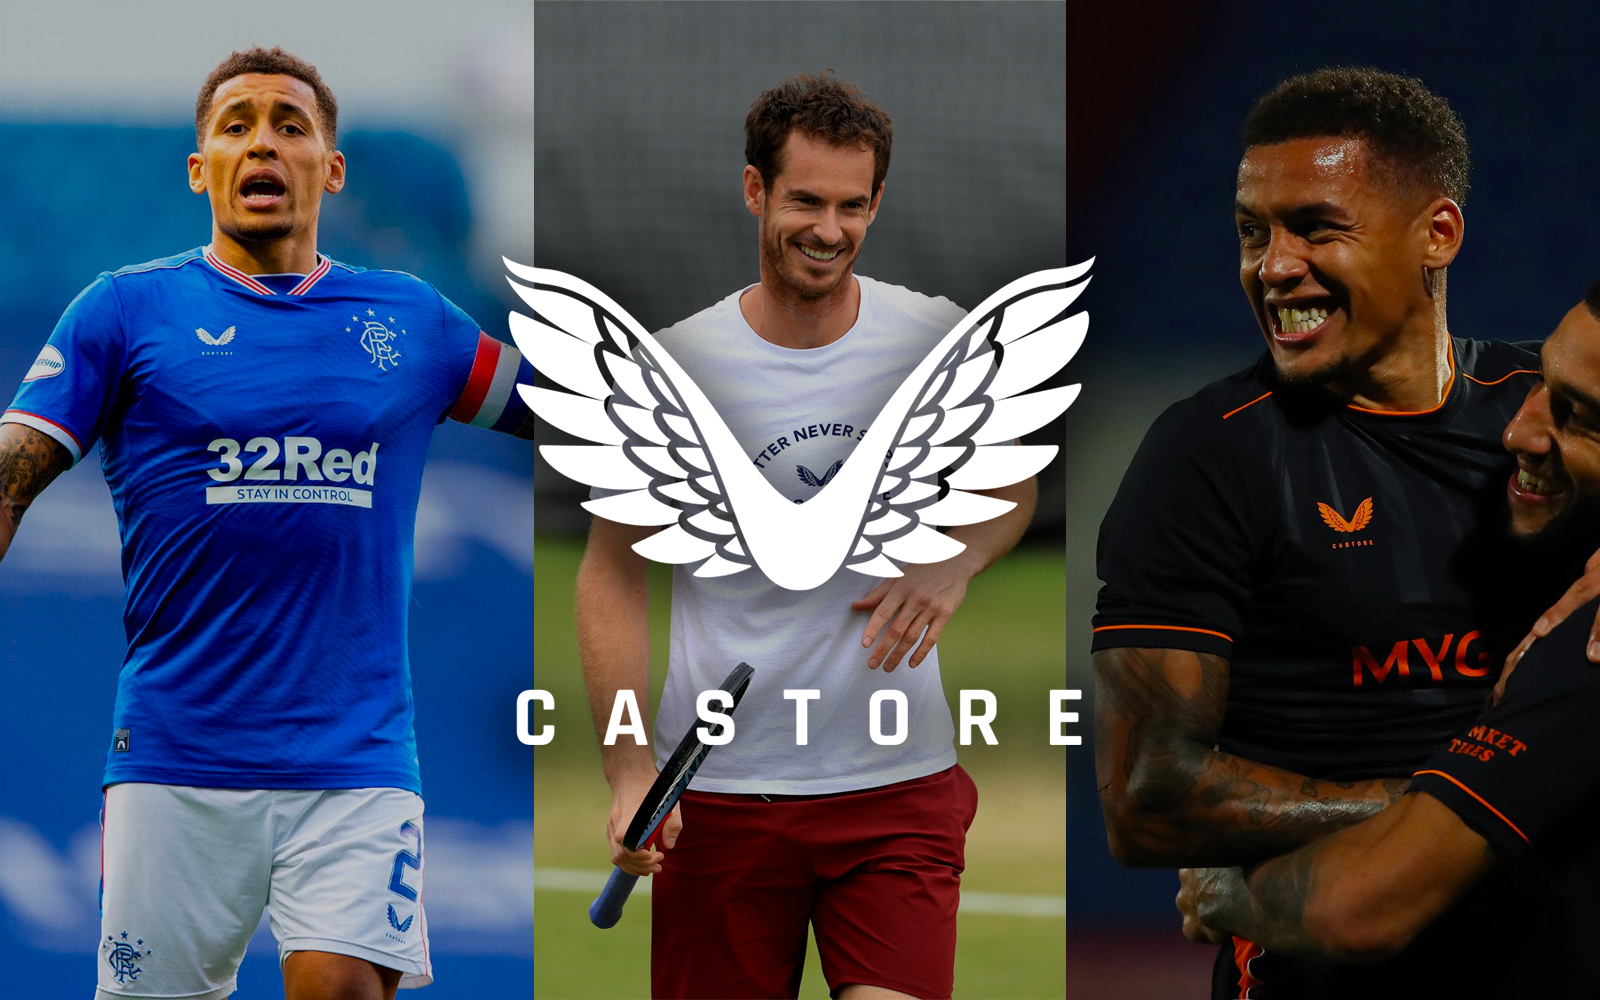 Where does Castore come from?